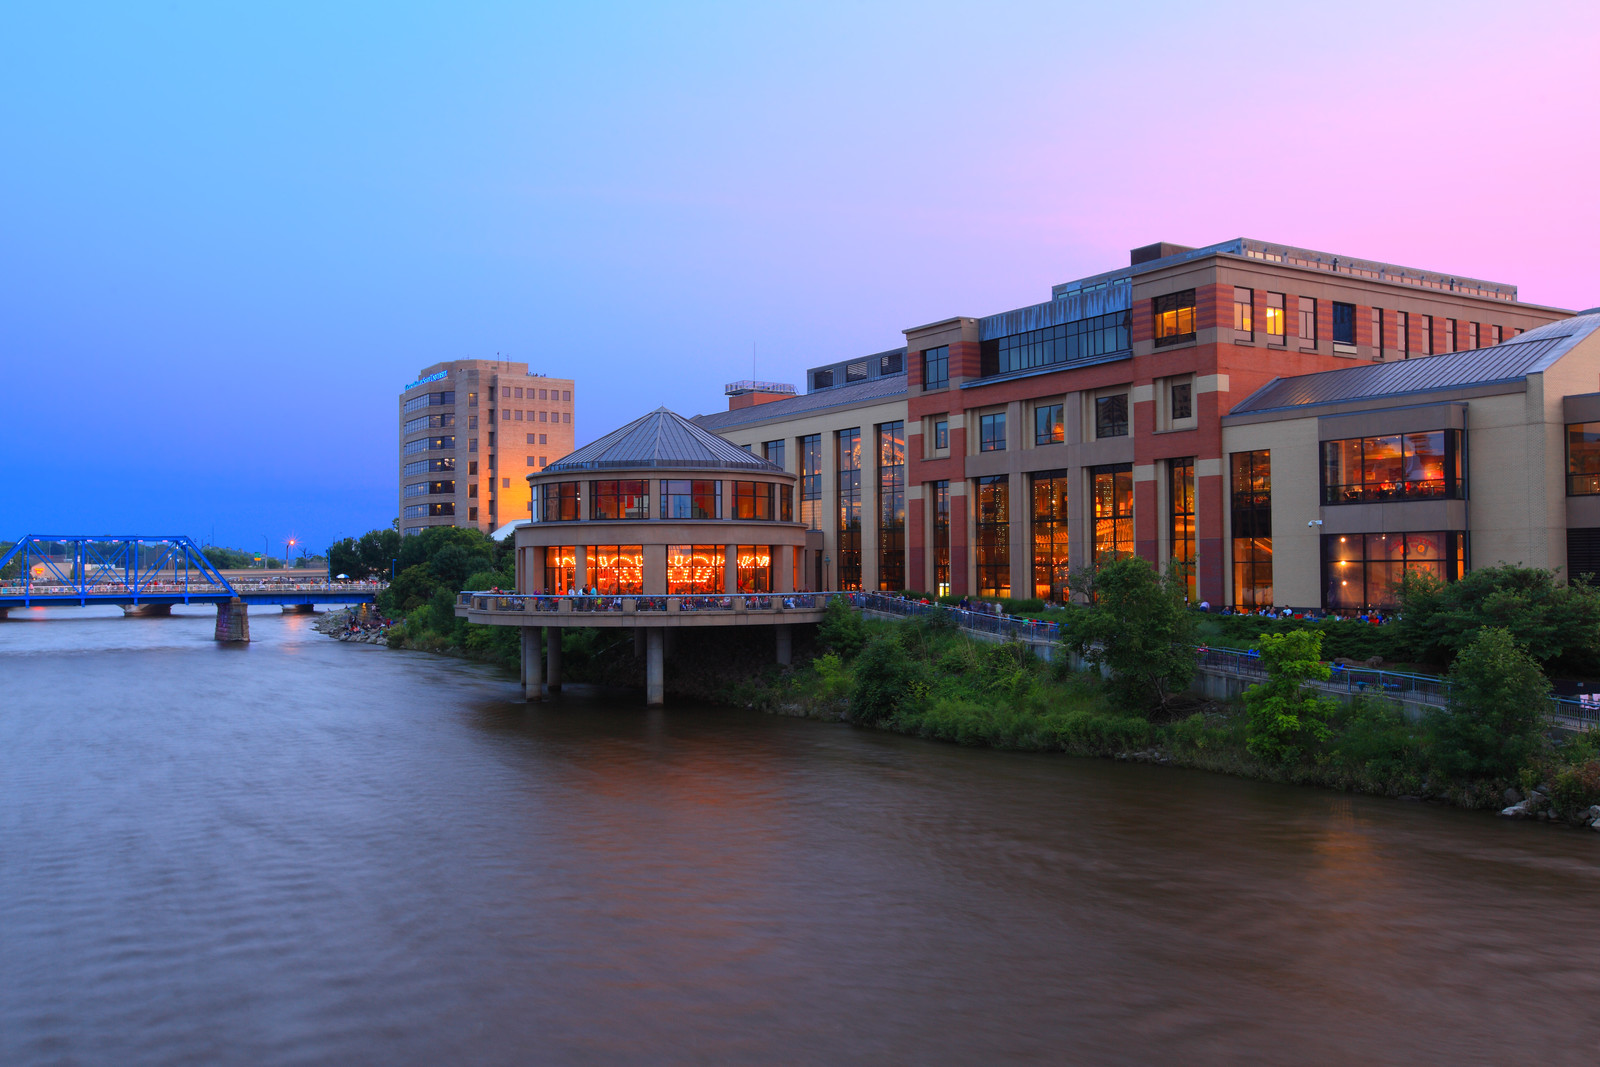 Unique architecture design in grand rapids overlooking the grand rapids river at sunset